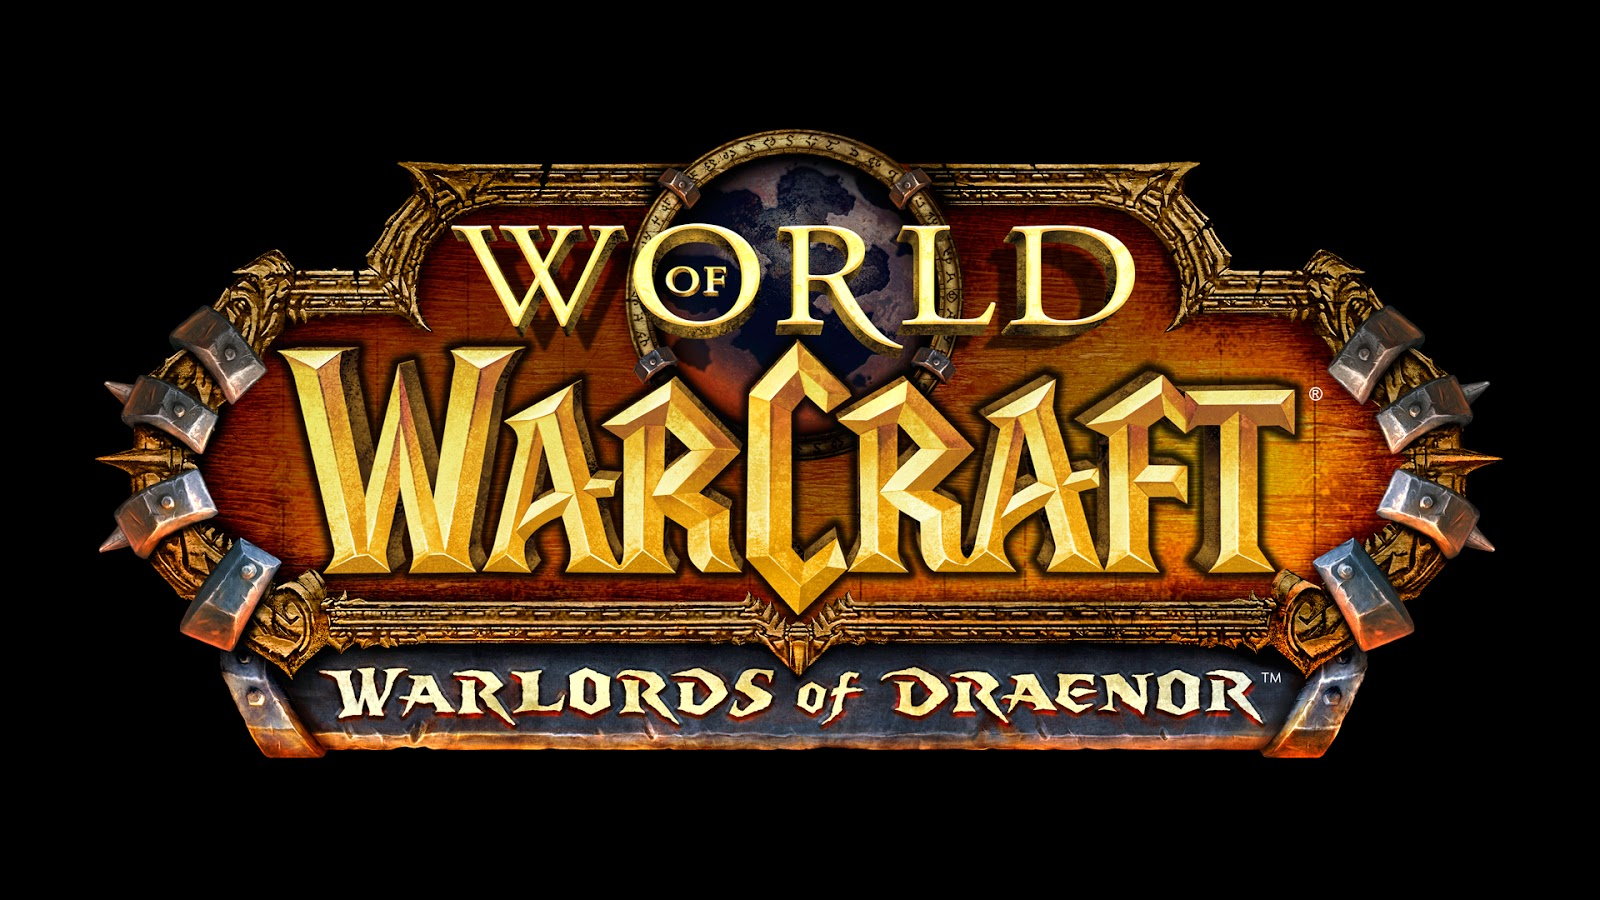 Preorder Warlords of Draenor on sale half price